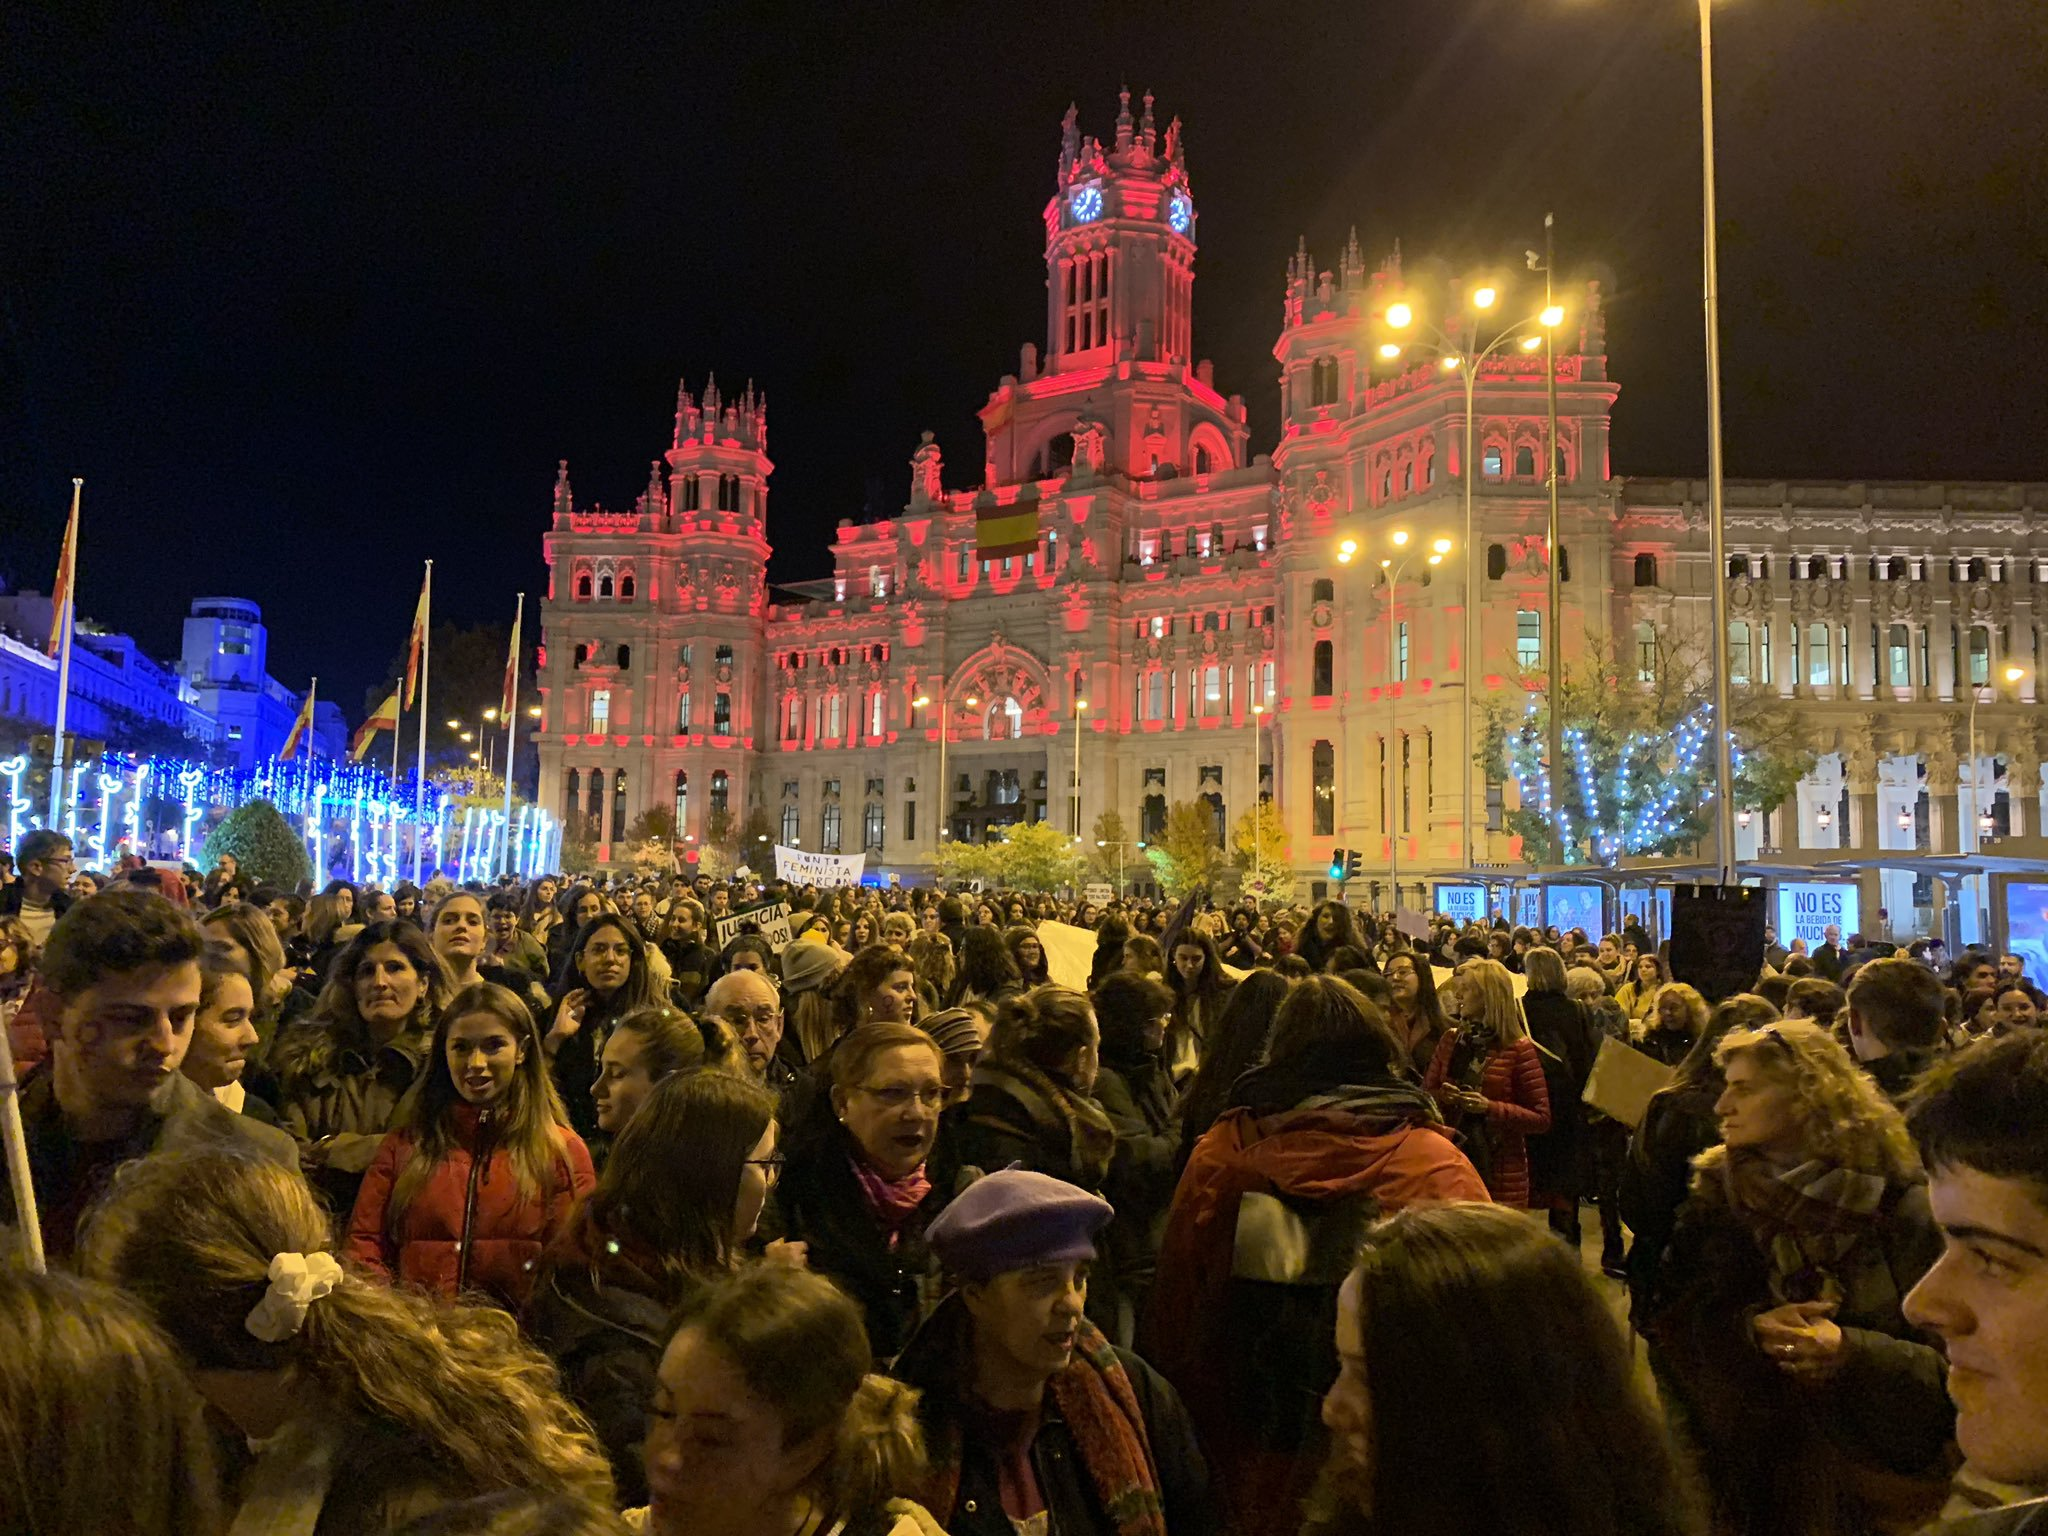 Thousands support end to gender violence, on same day woman is murdered in Tenerife